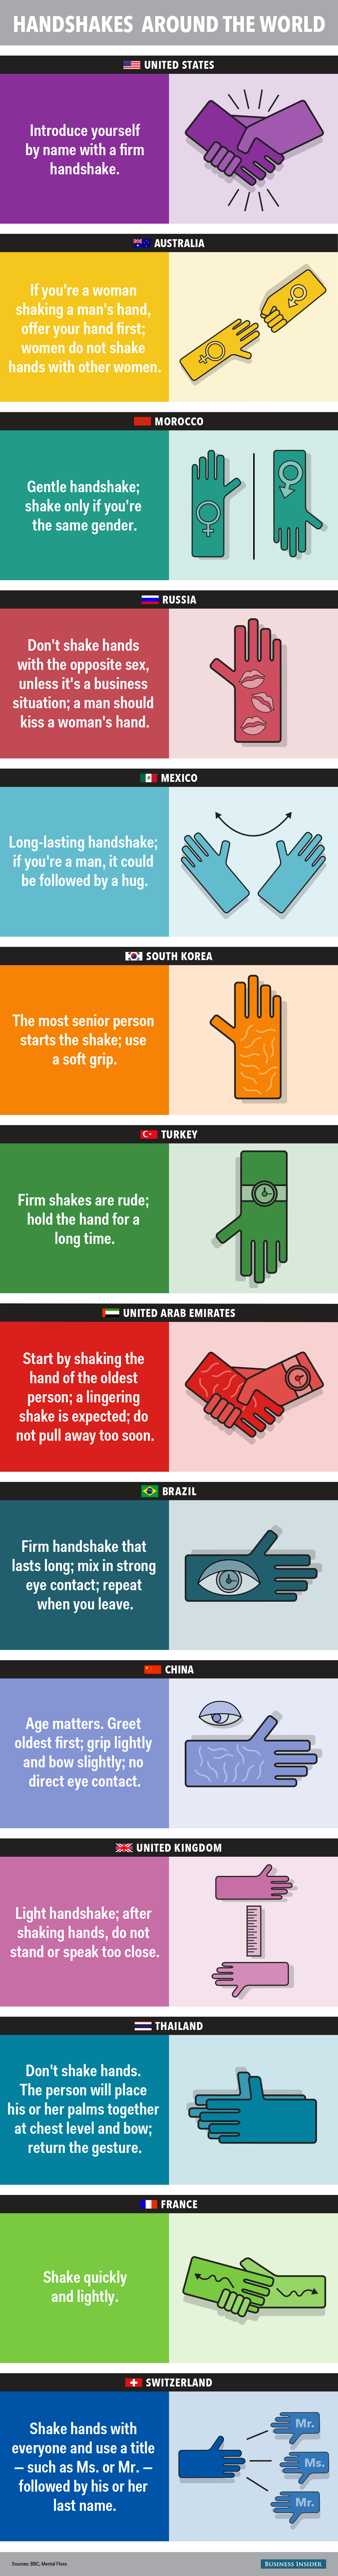 Heres how to properly shake hands in 14 different countries heres how to properly shake hands in 14 different countries read more httpbusinessinsiderhow to properly shake hands around the world 2015 3 m4hsunfo